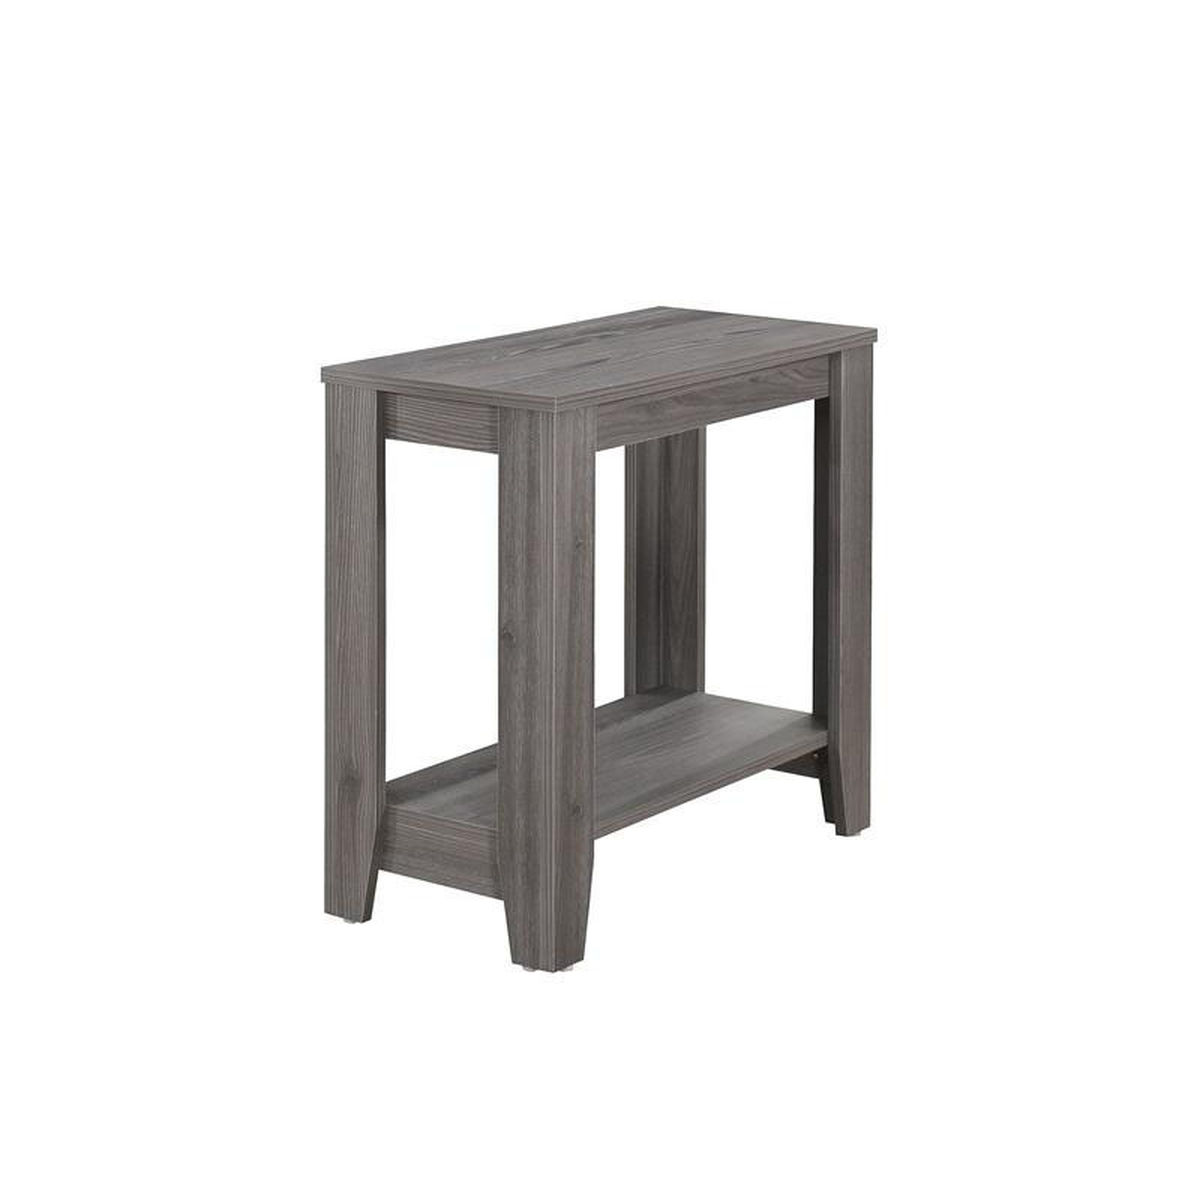 gray accent side table bizchair monarch specialties msp main white our modern solid wood with tapered legs pendant lighting lamps for living room brown end tables inch extra large